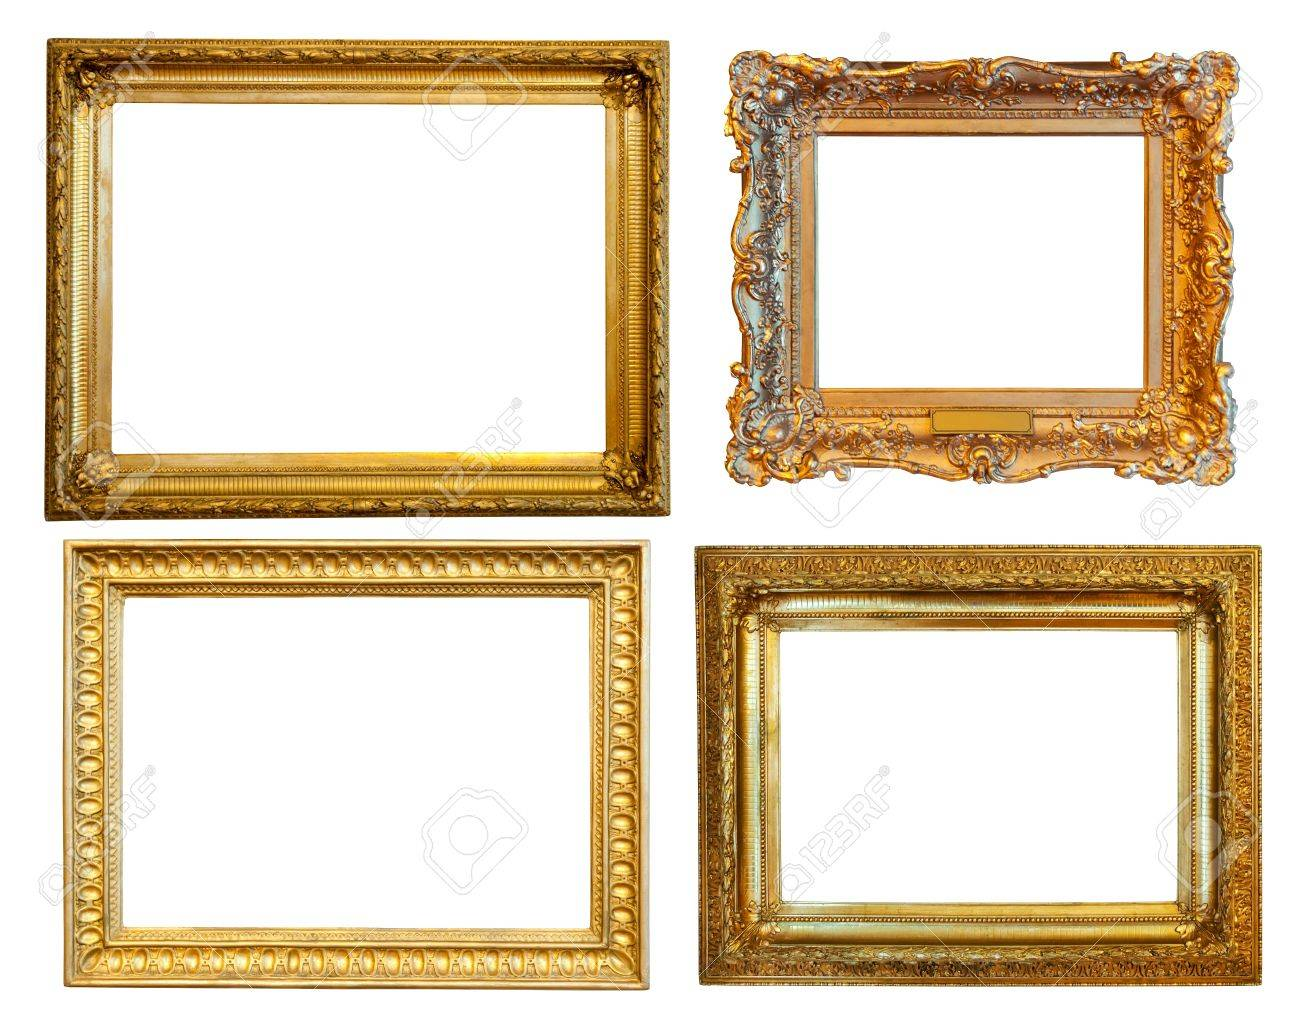 a19125ed55f 4 Gold Frames Isolated Over White Background With Clipping Path